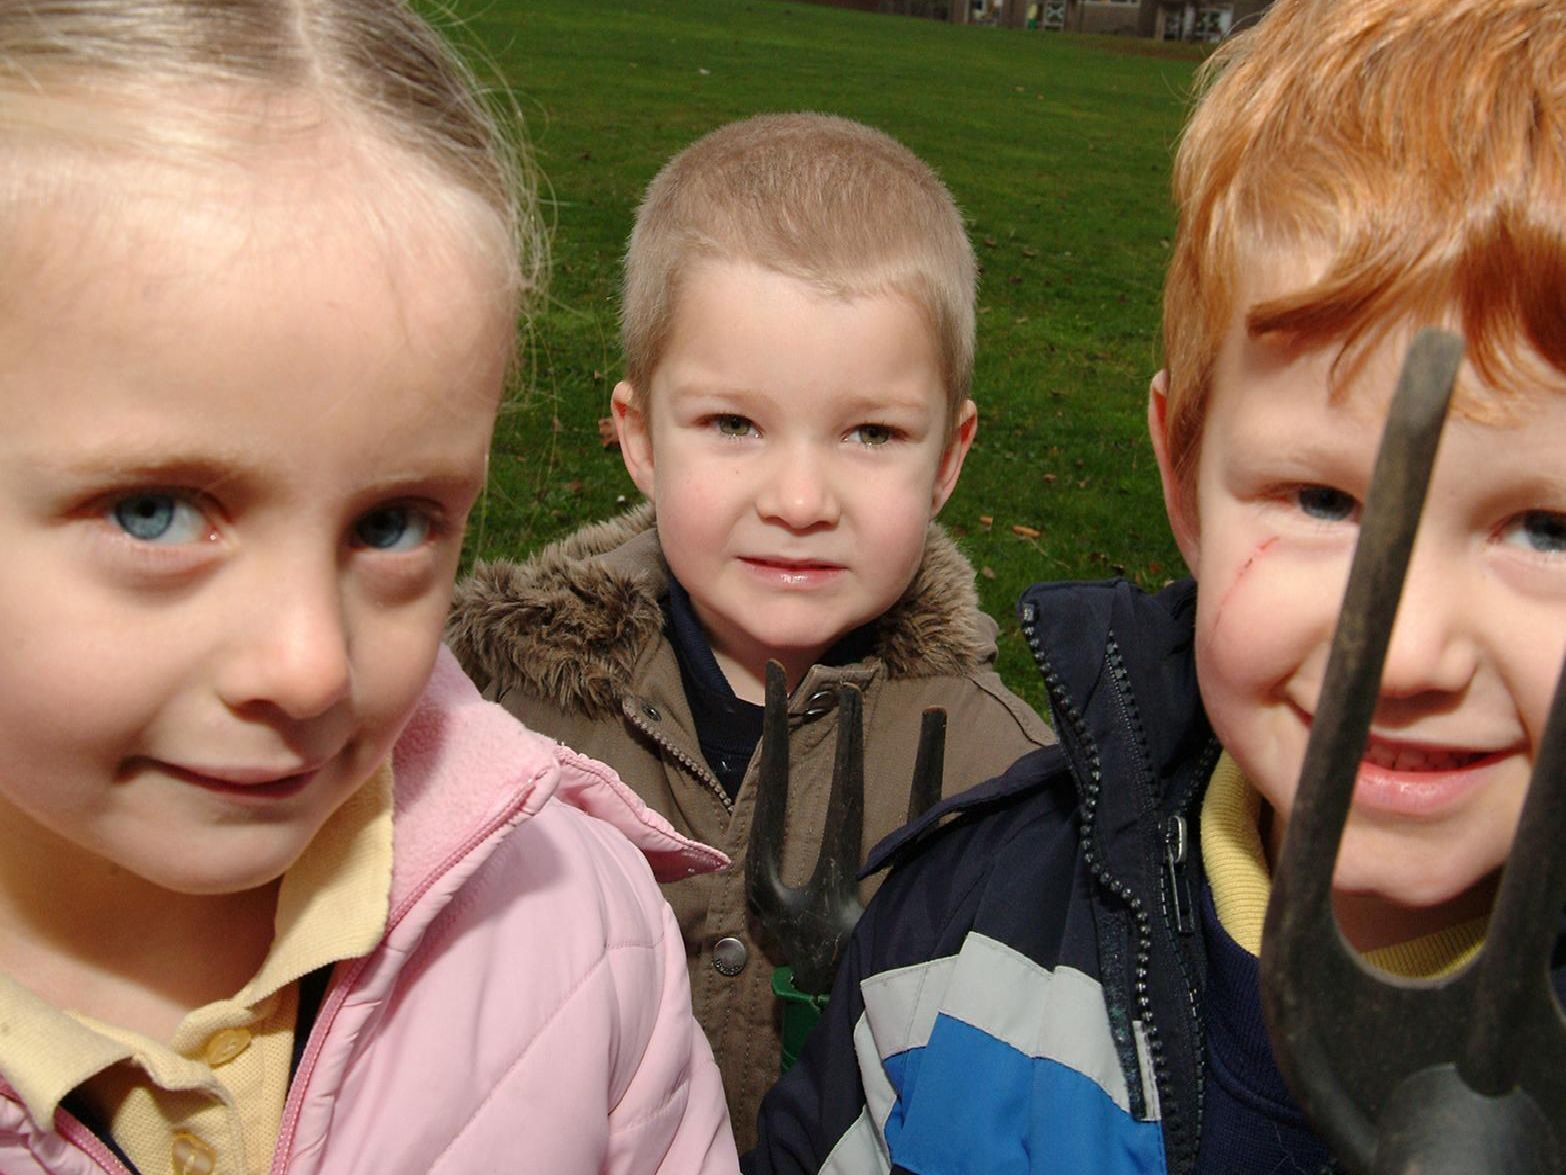 2007: This  trio from Manton New Primary School get ready to help plant trees as part of The Woodland Trust project Trees For All. Pictured left to right are: Lily Atkinson, Zak Ebbs and Josh Keily.